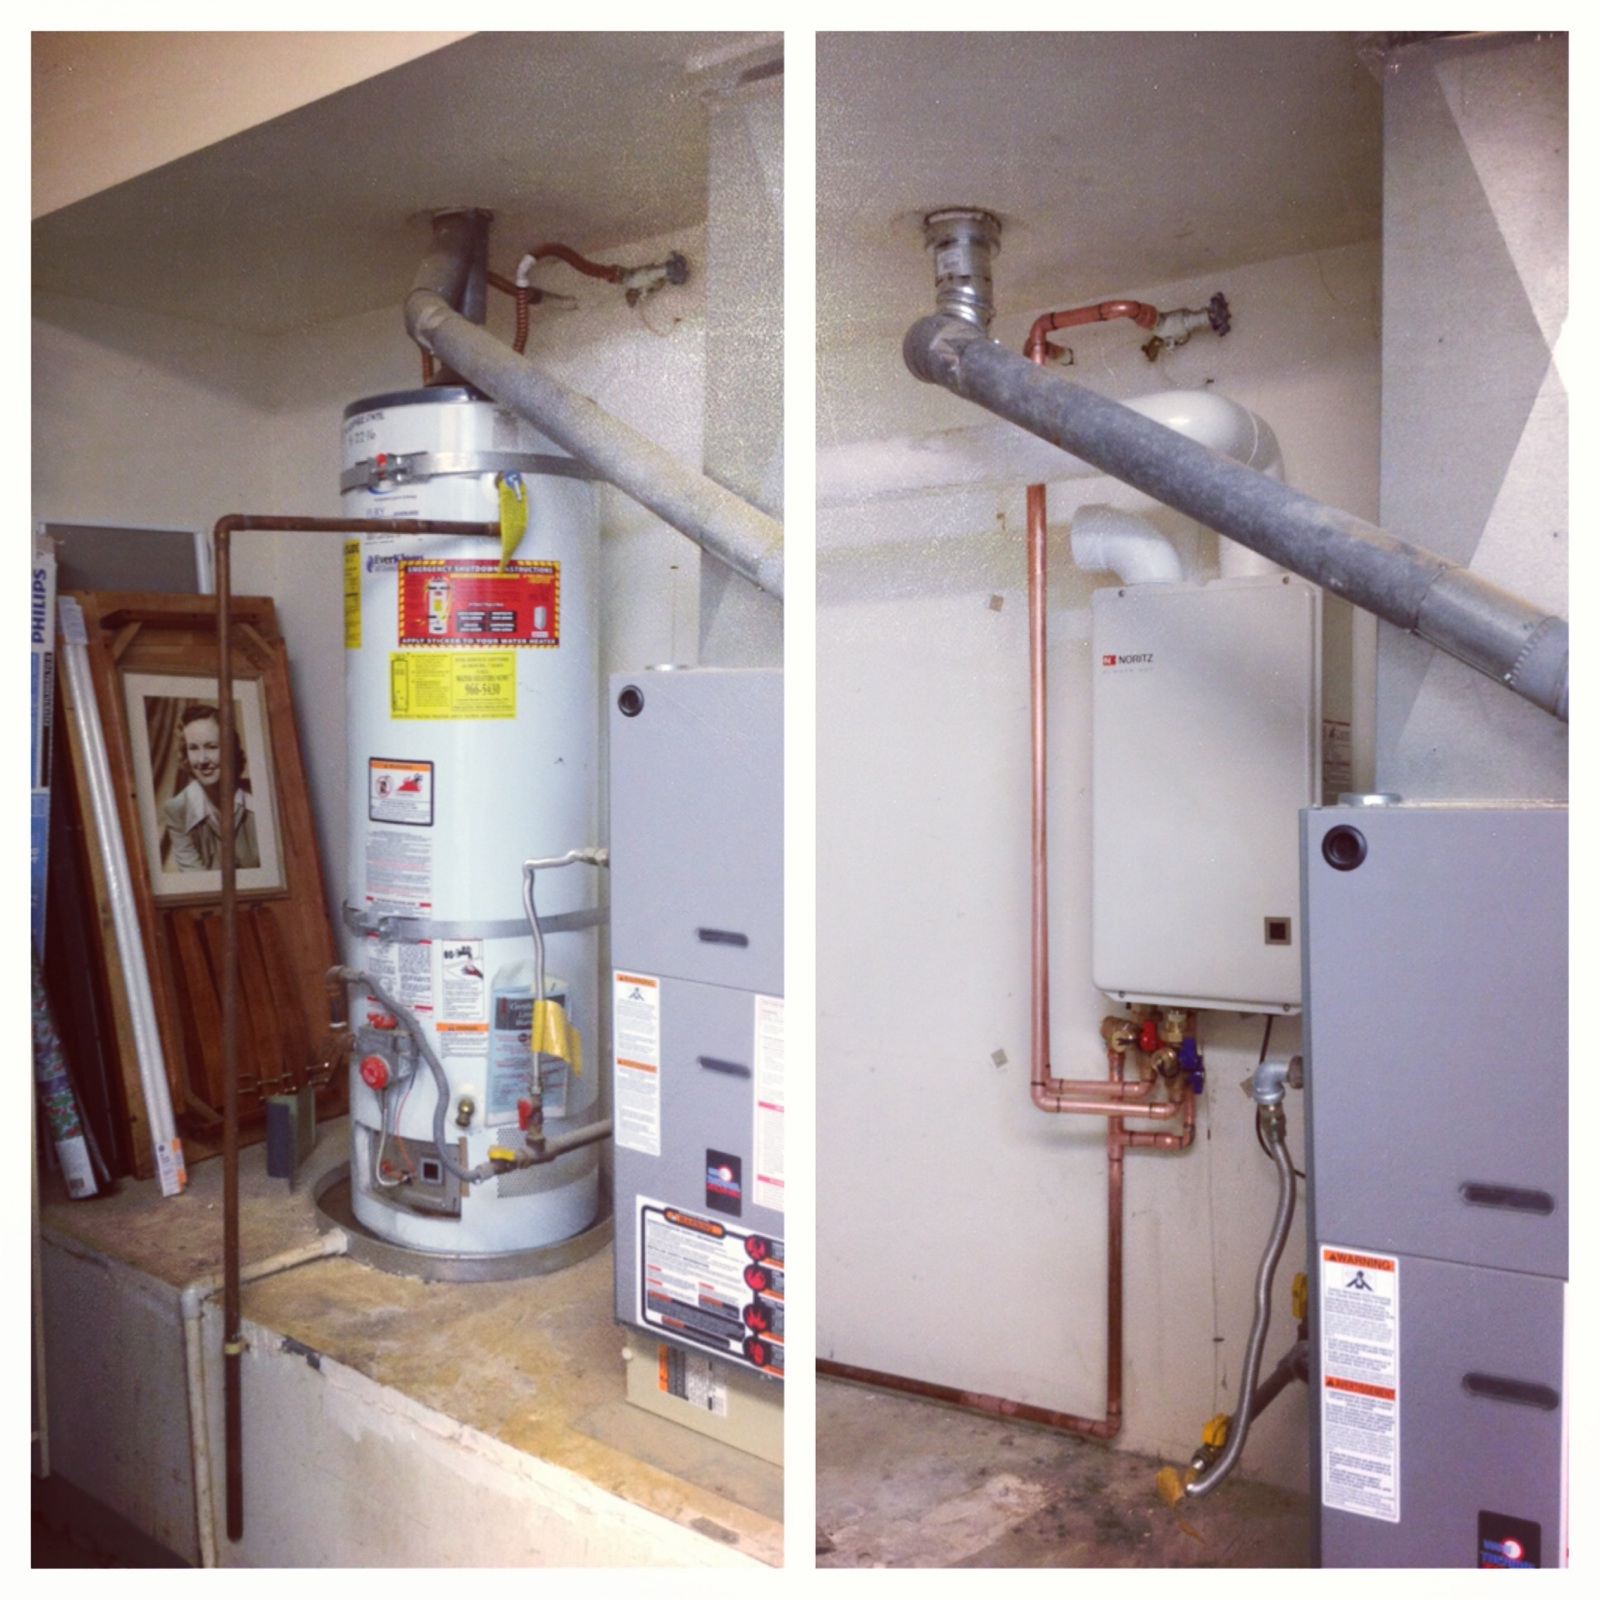 A Payless Water Heaters & Plumbing - ad image